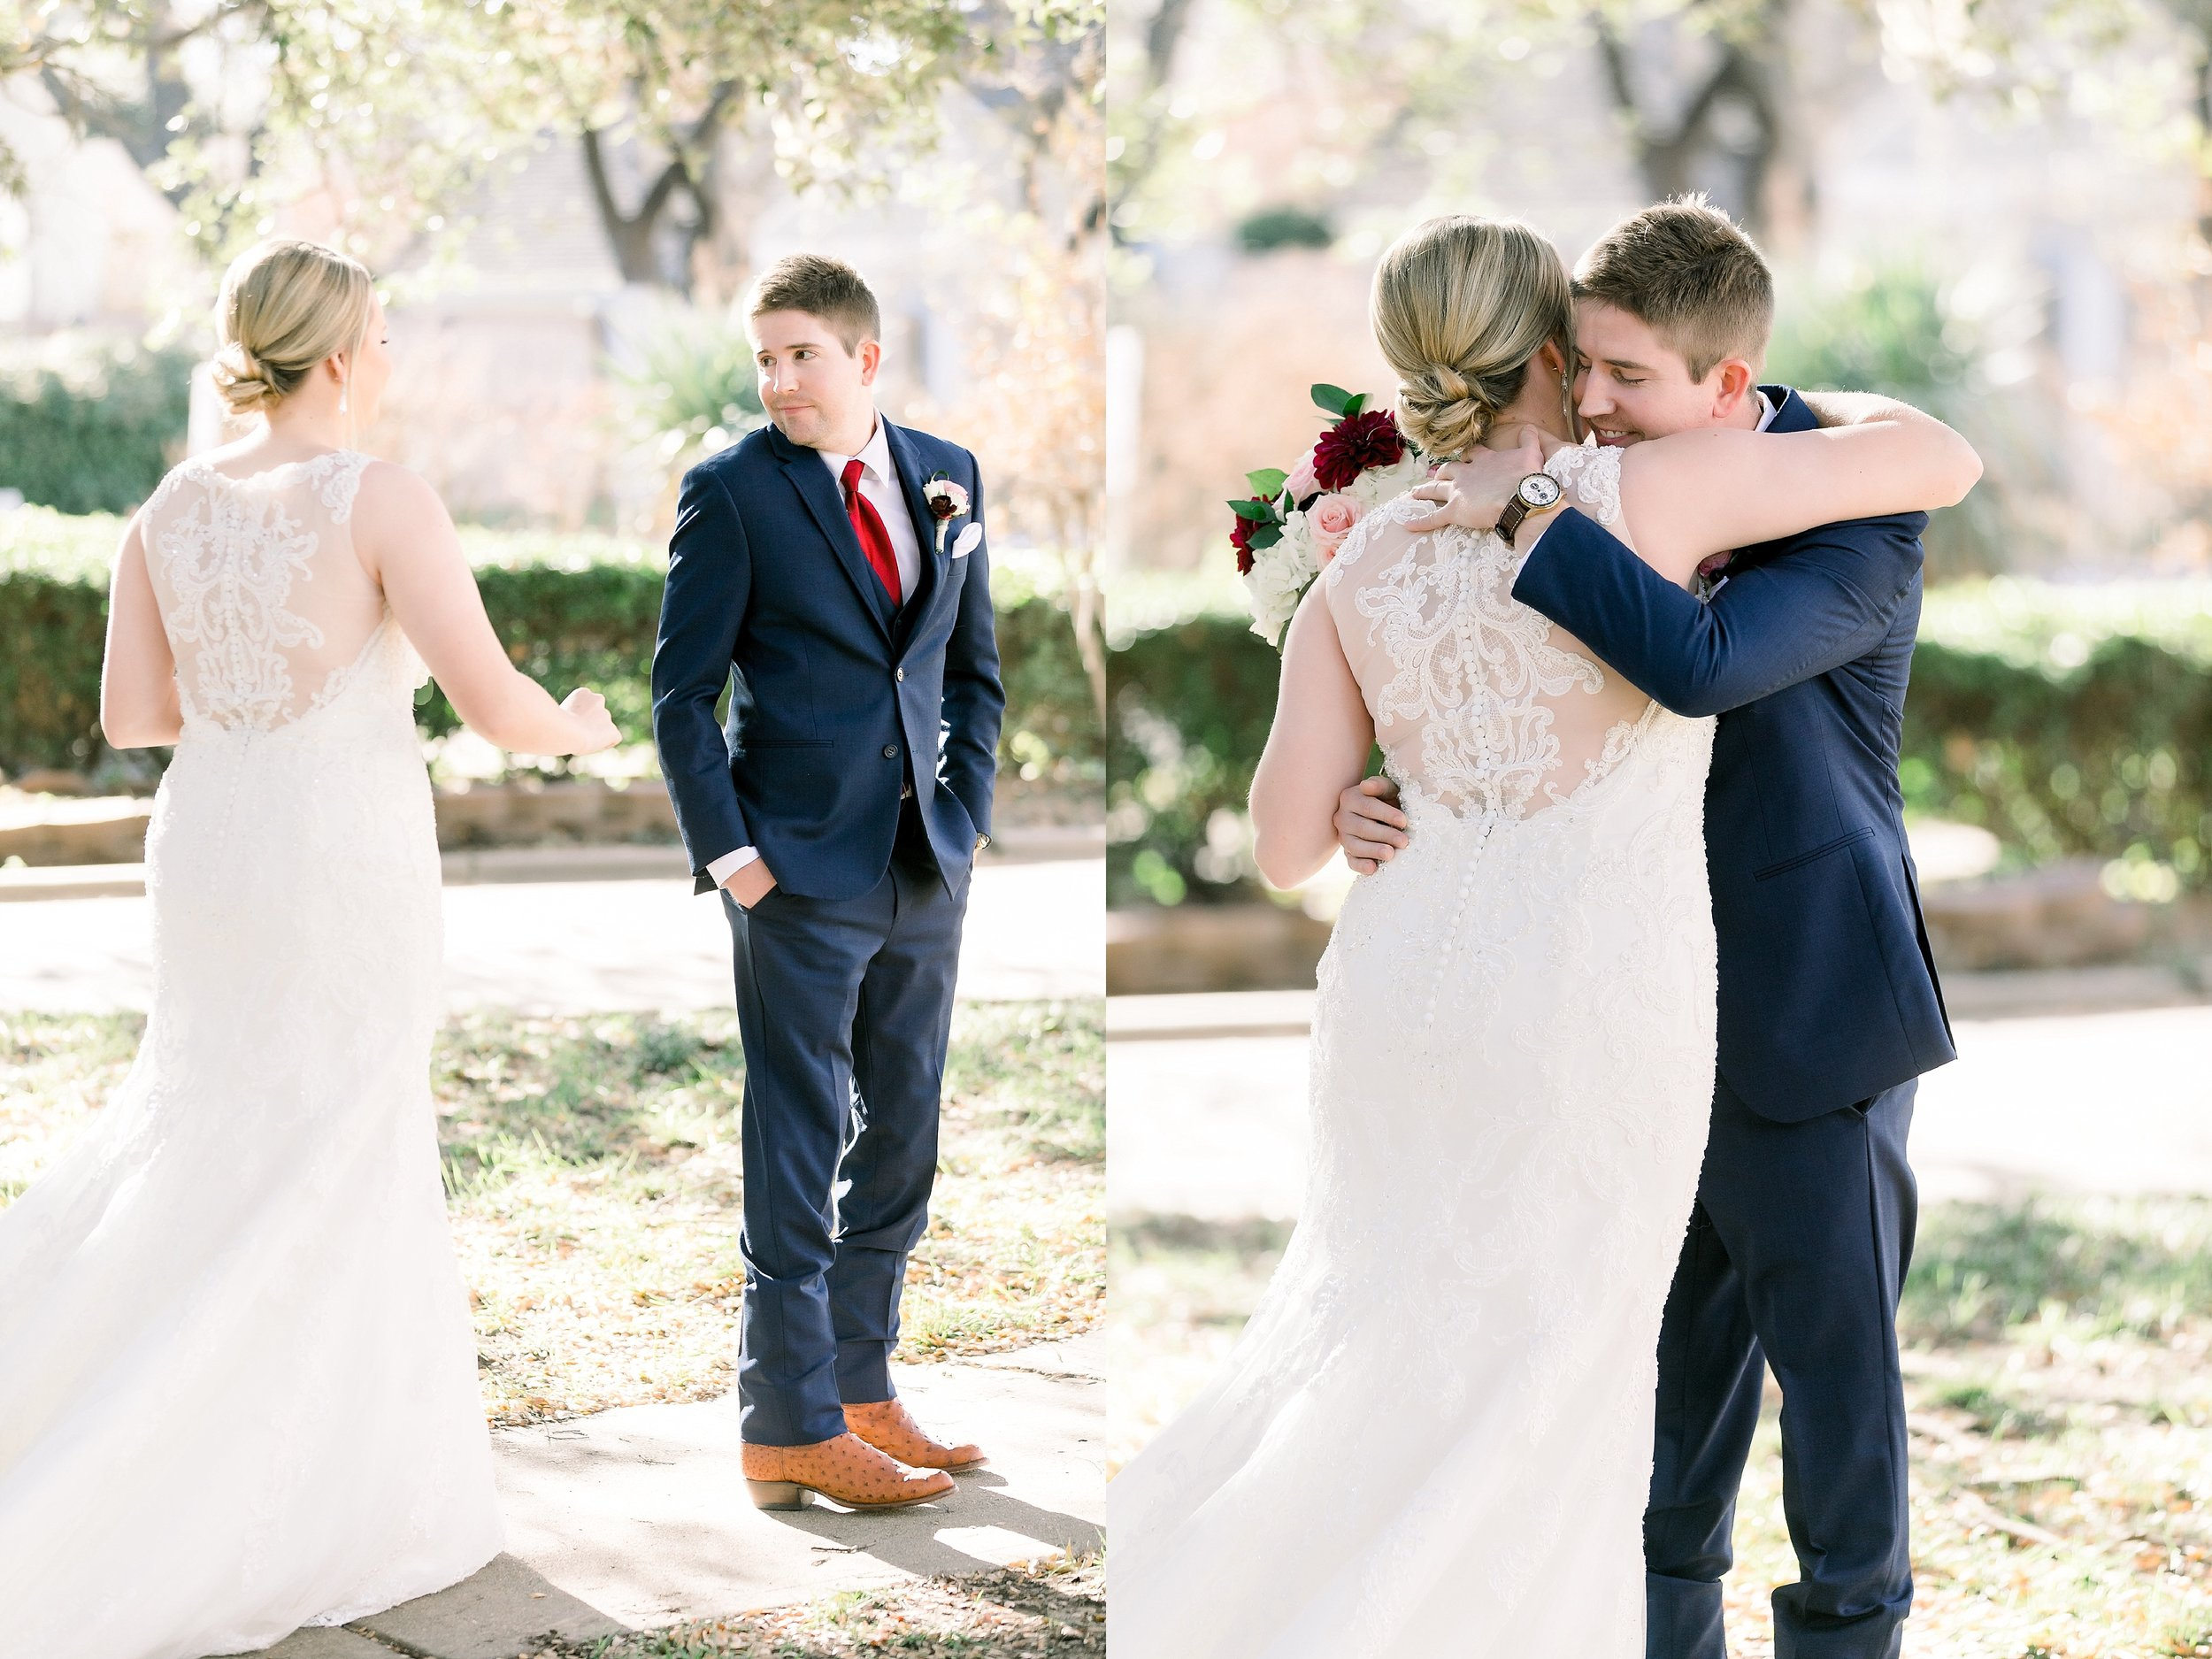 wedding-at-the-forum-and-first-presbyterian-wichita-falls-wedding-photographer-mayfield-events-033.jpg